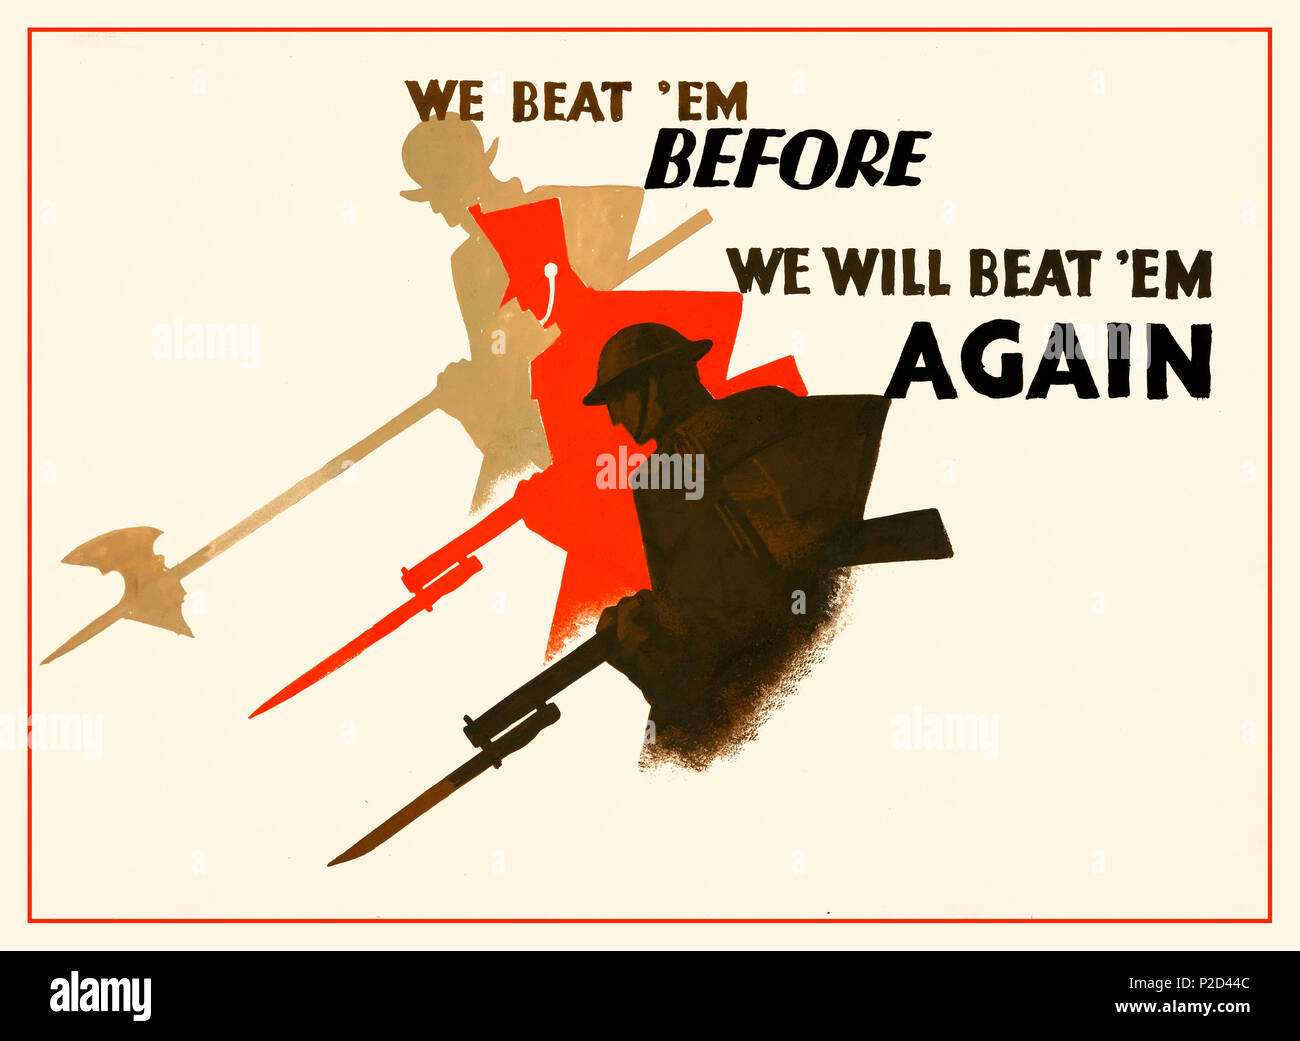 WW2 1940 Vintage Propaganda Graphic Art Poster, illustrating British historically defeating  the Germans in WW1 and will beat them again in WWII - Stock Image